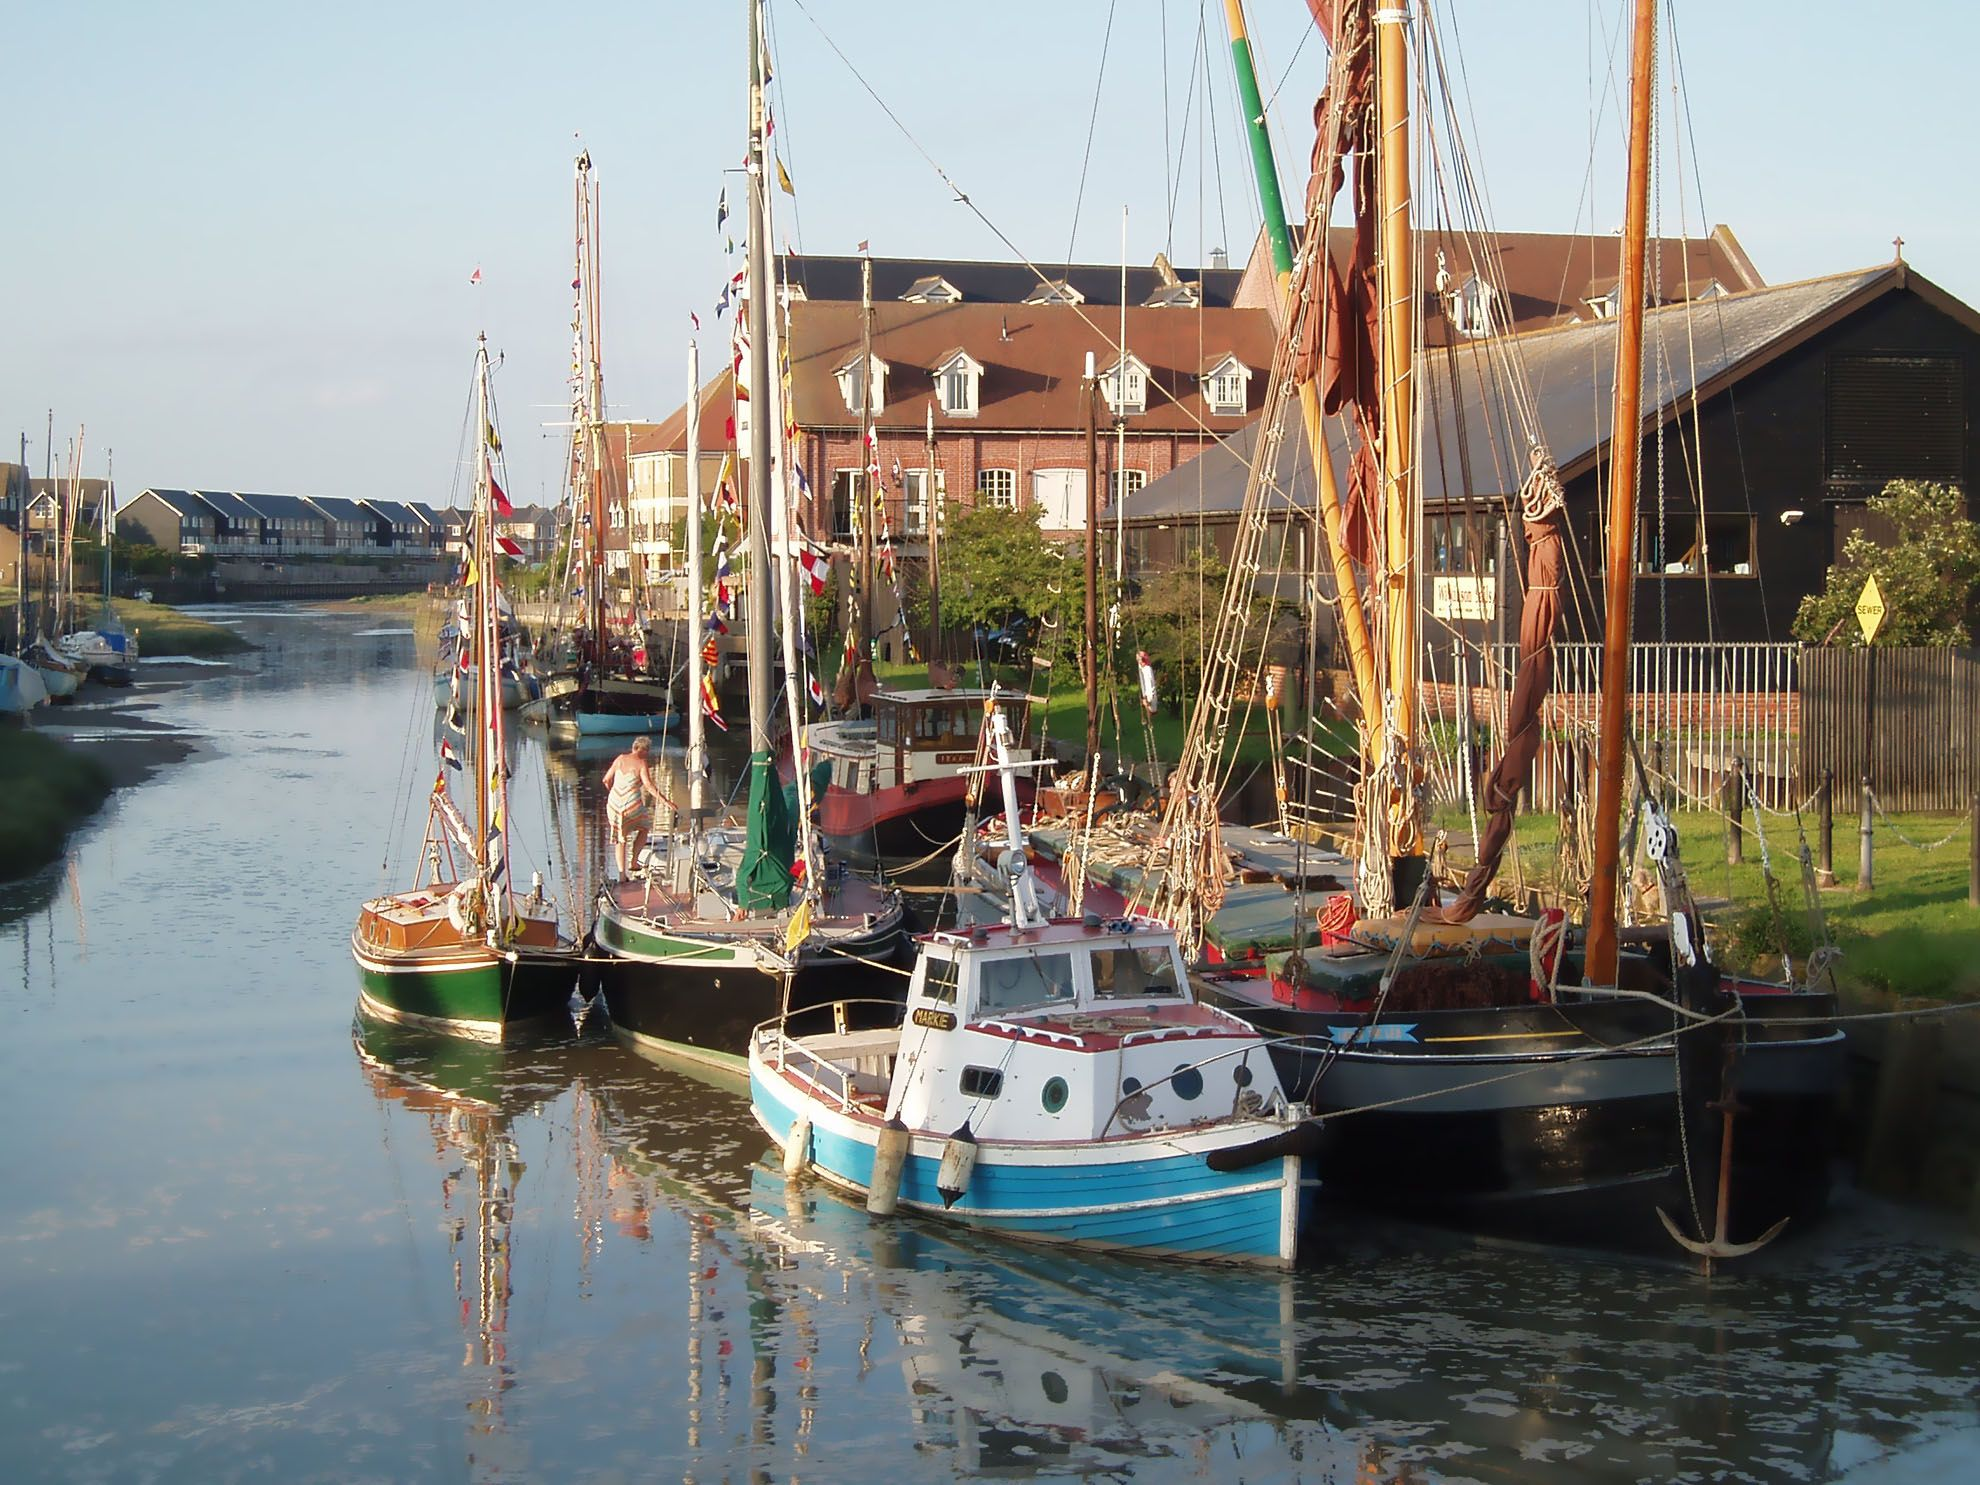 The medieval market town of Faversham, home to Britain's oldest brewery is a short drive.